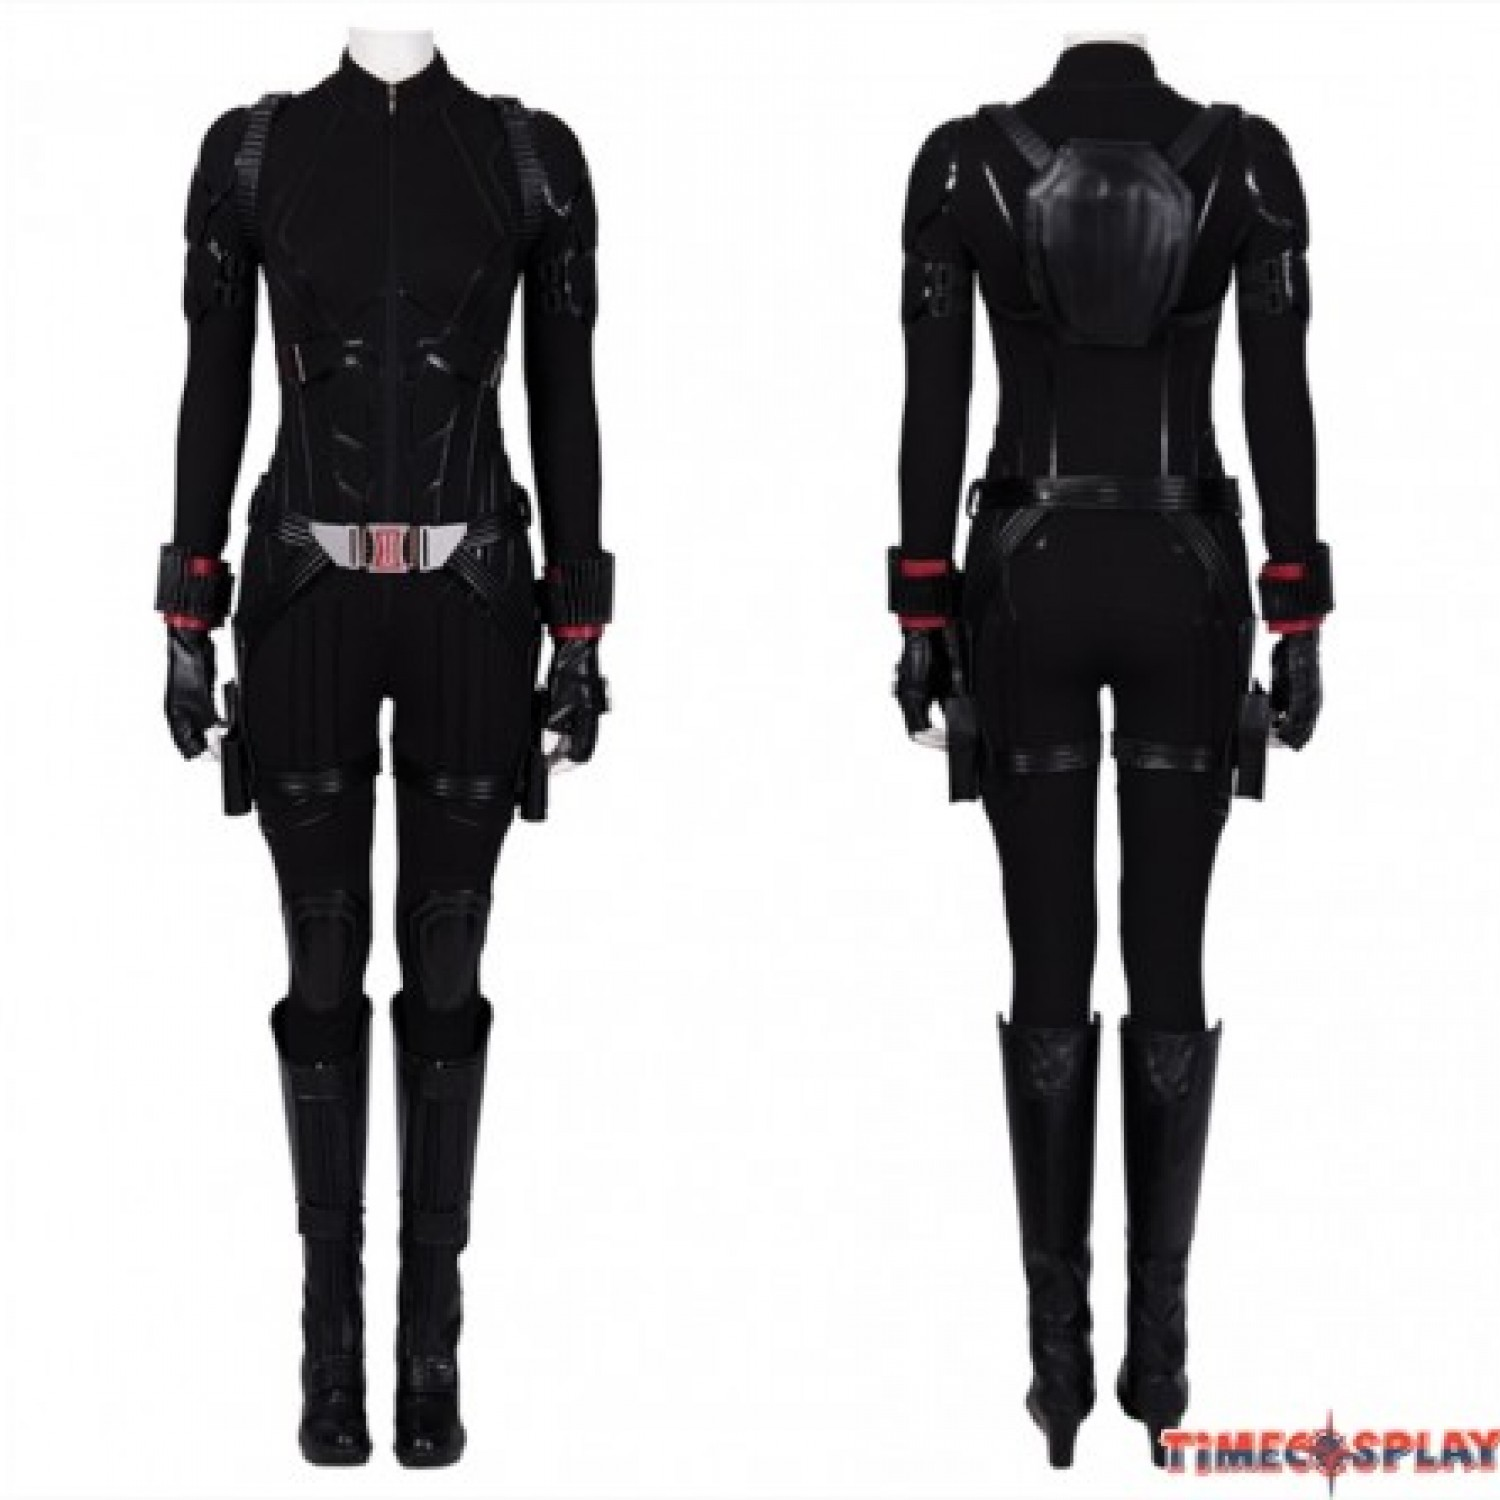 Avengers 4 Endgame Black Widow Cosplay Costume